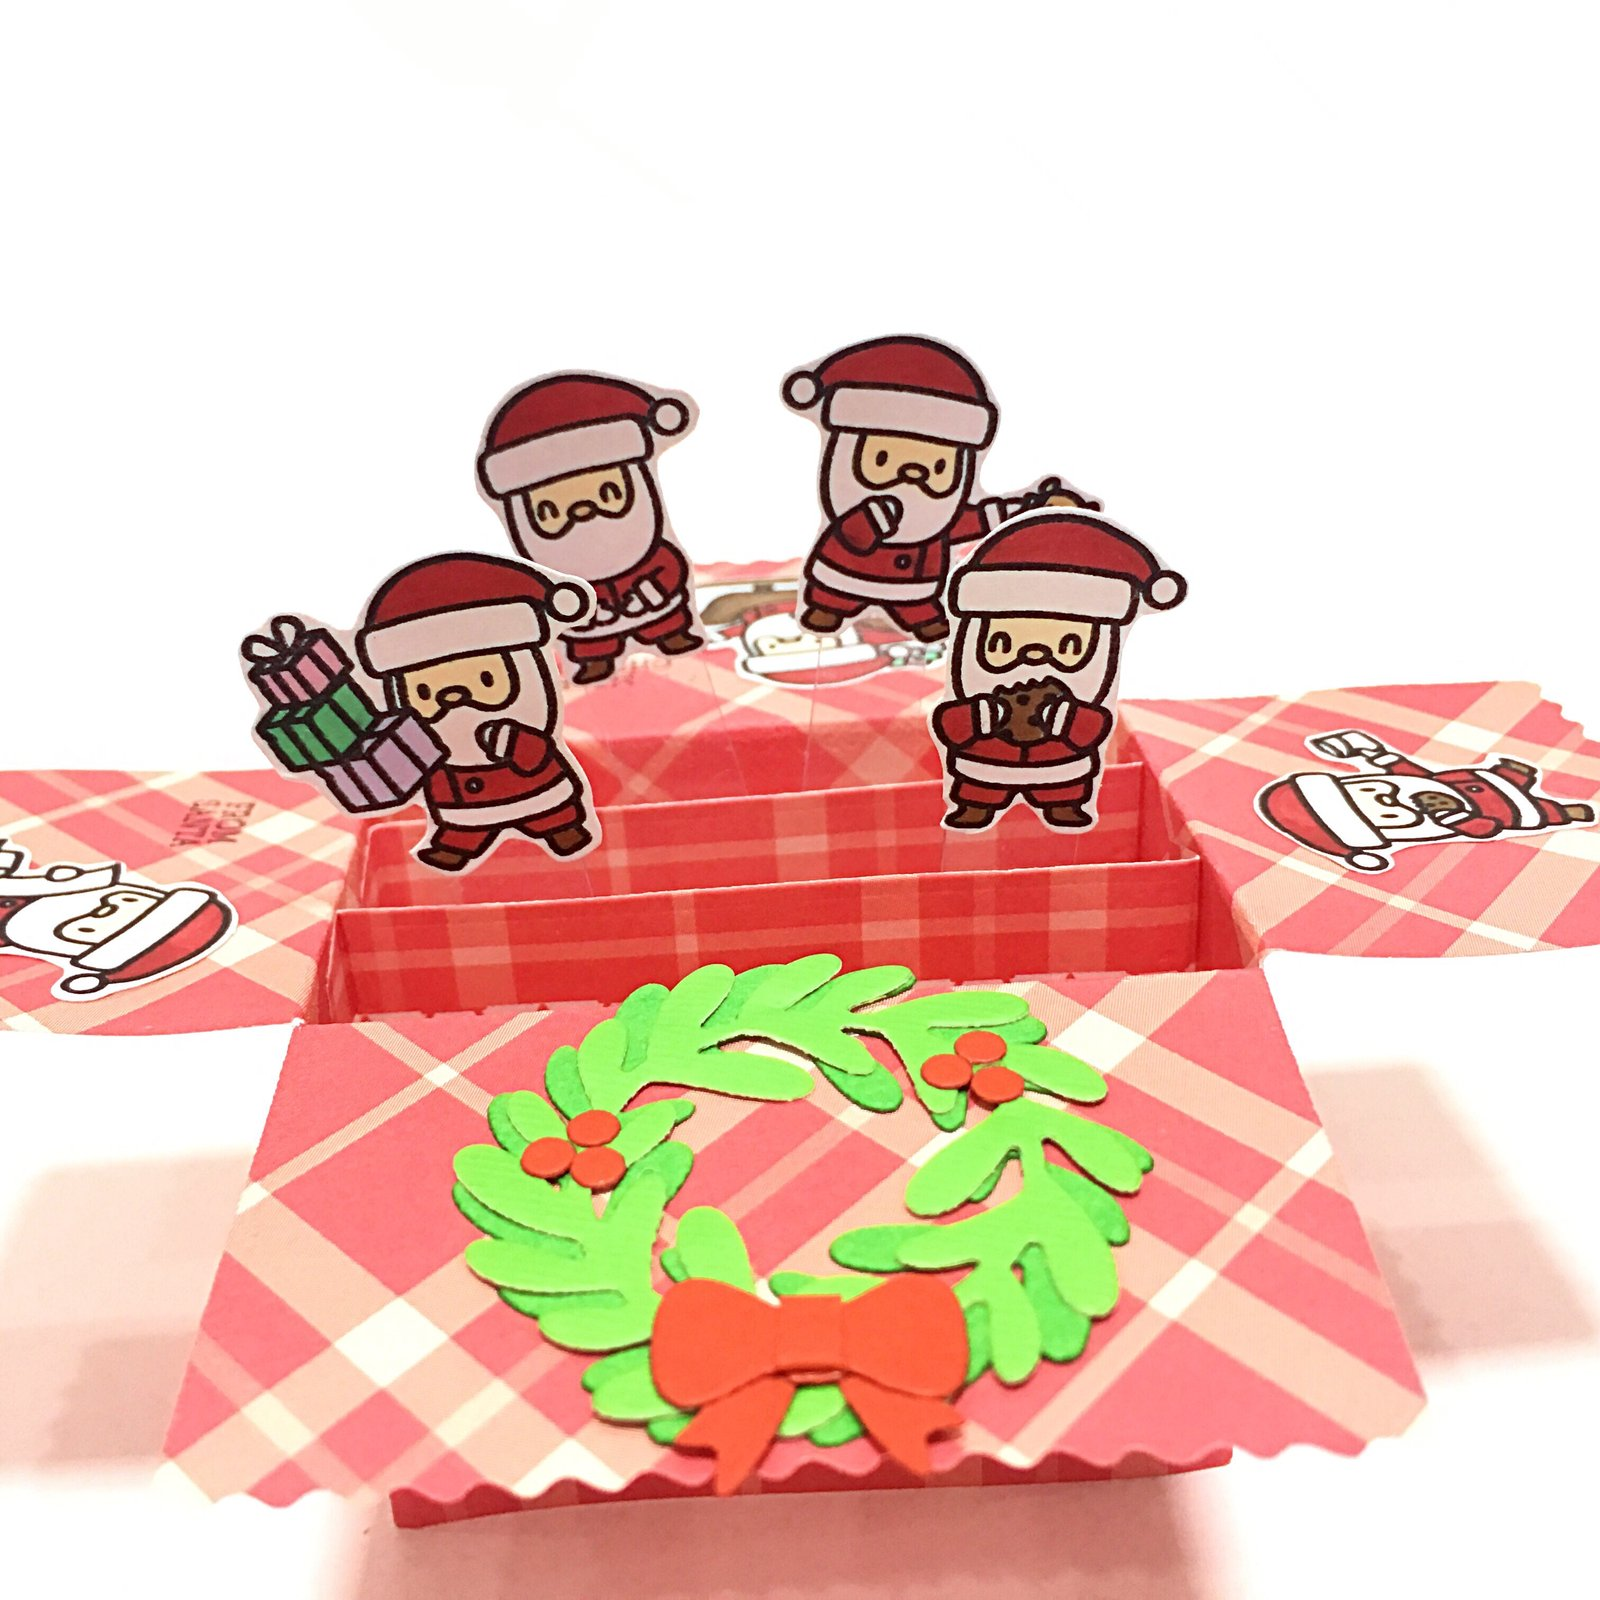 1600x1600 Santa Claus Is Coming To Town Mini Pop Up Box Card V2 My Fattybobo